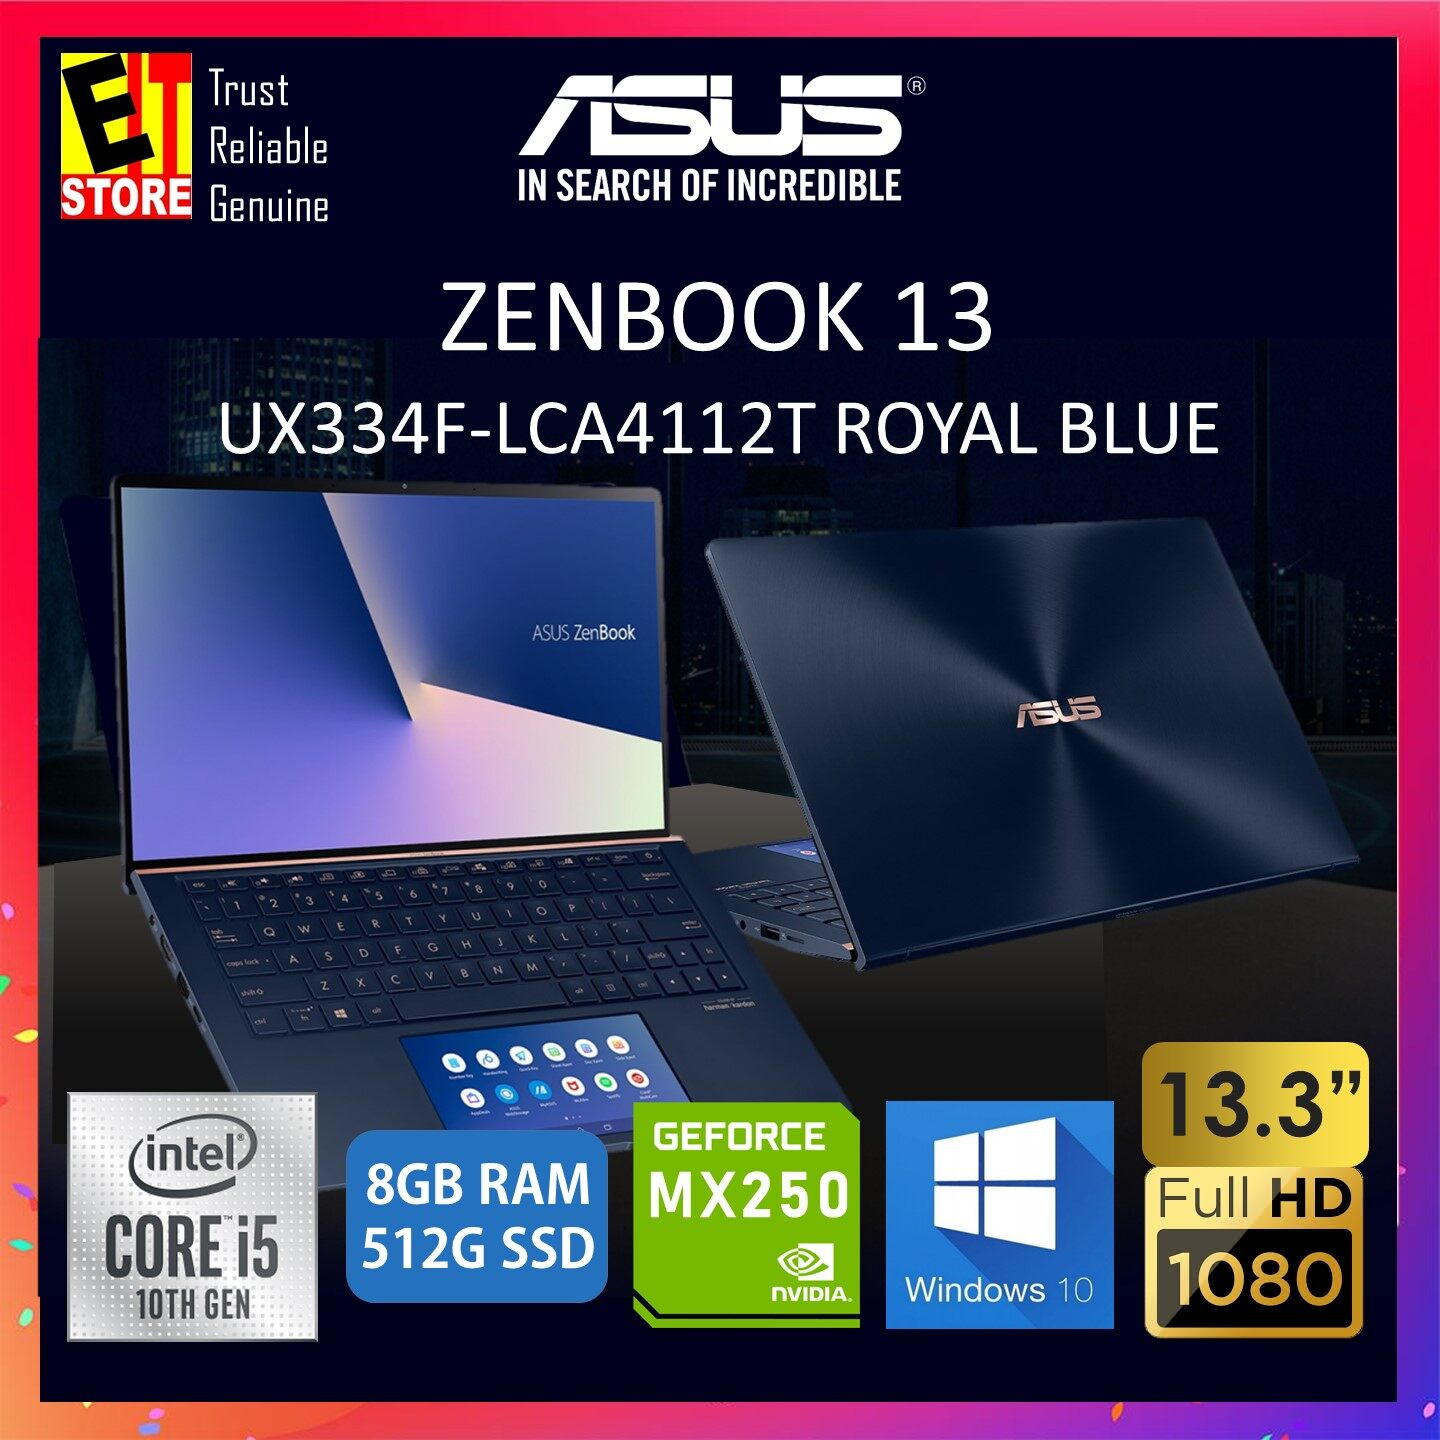 ASUS ZENBOOK 13 UX334F-LCA4112T LAPTOP -ROYAL BLUE (I5-10210U/8GB/512GB SSD/13.3  FHD/MX250 2GB/W10/2YRS) + BAG Malaysia